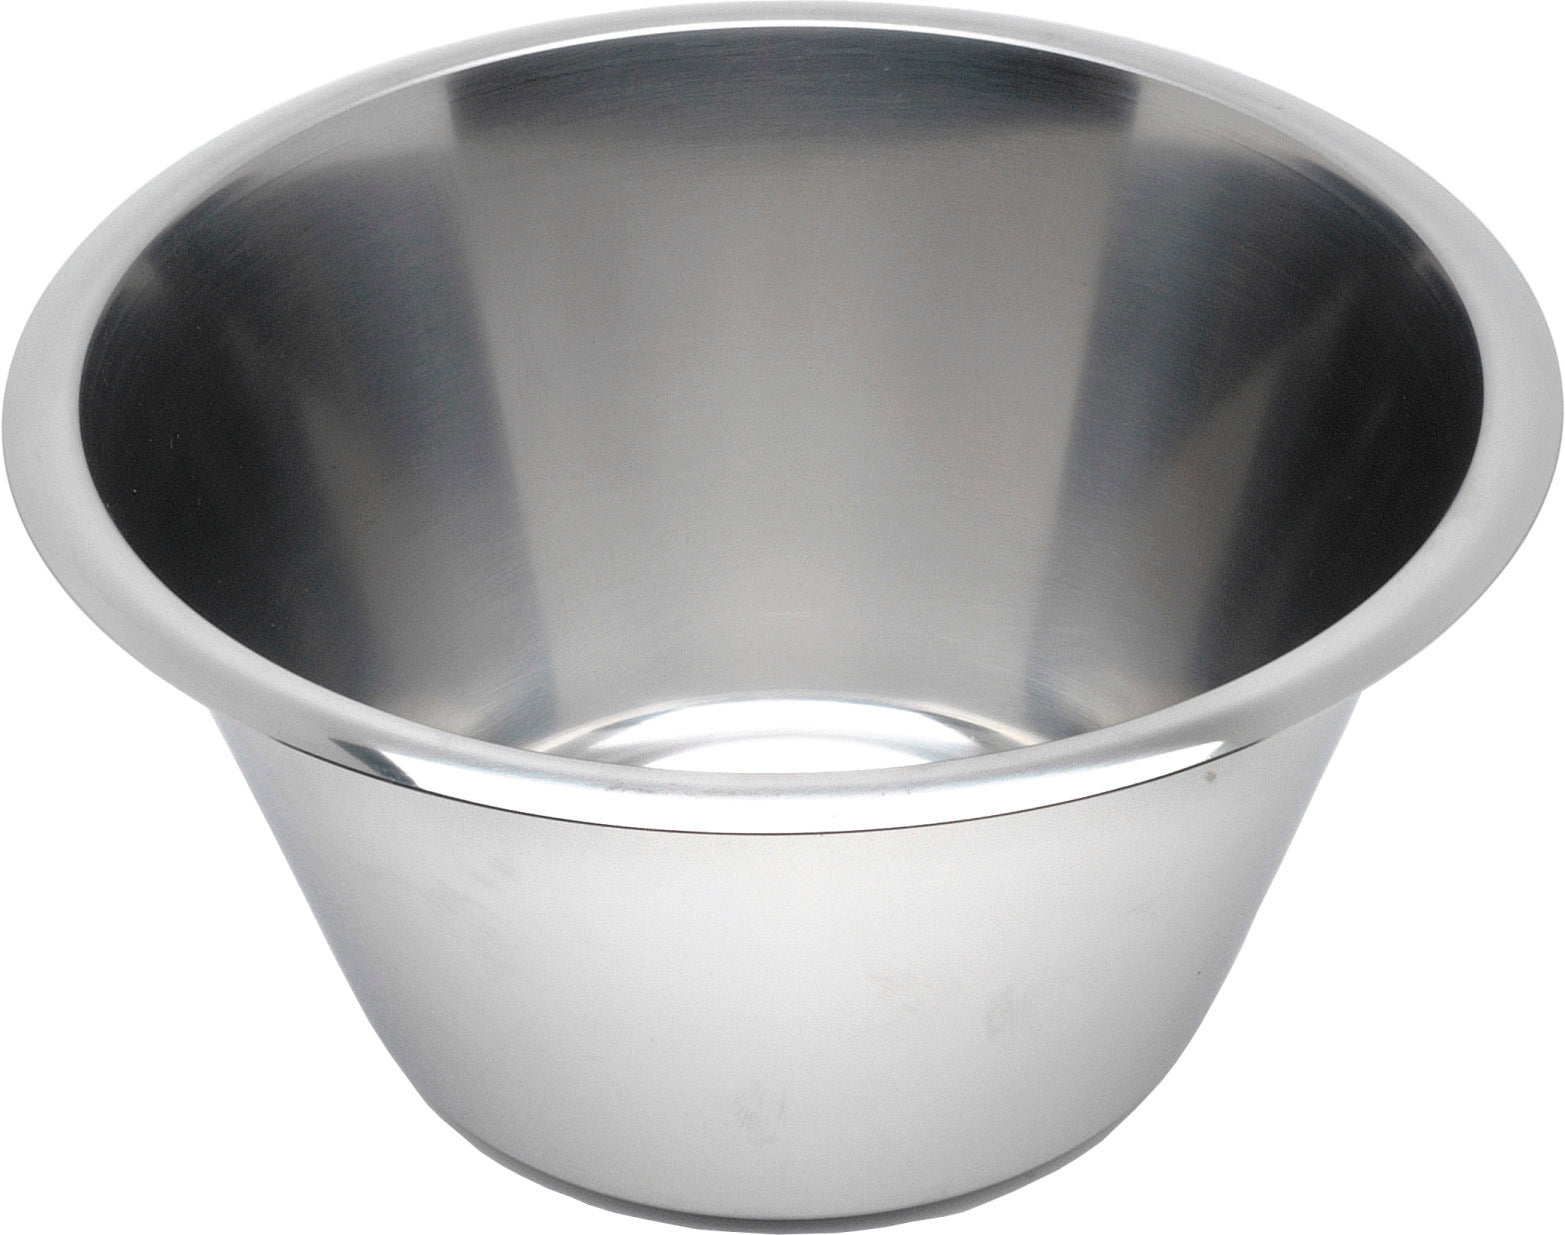 S/St Swedish Bowl 8 Litre